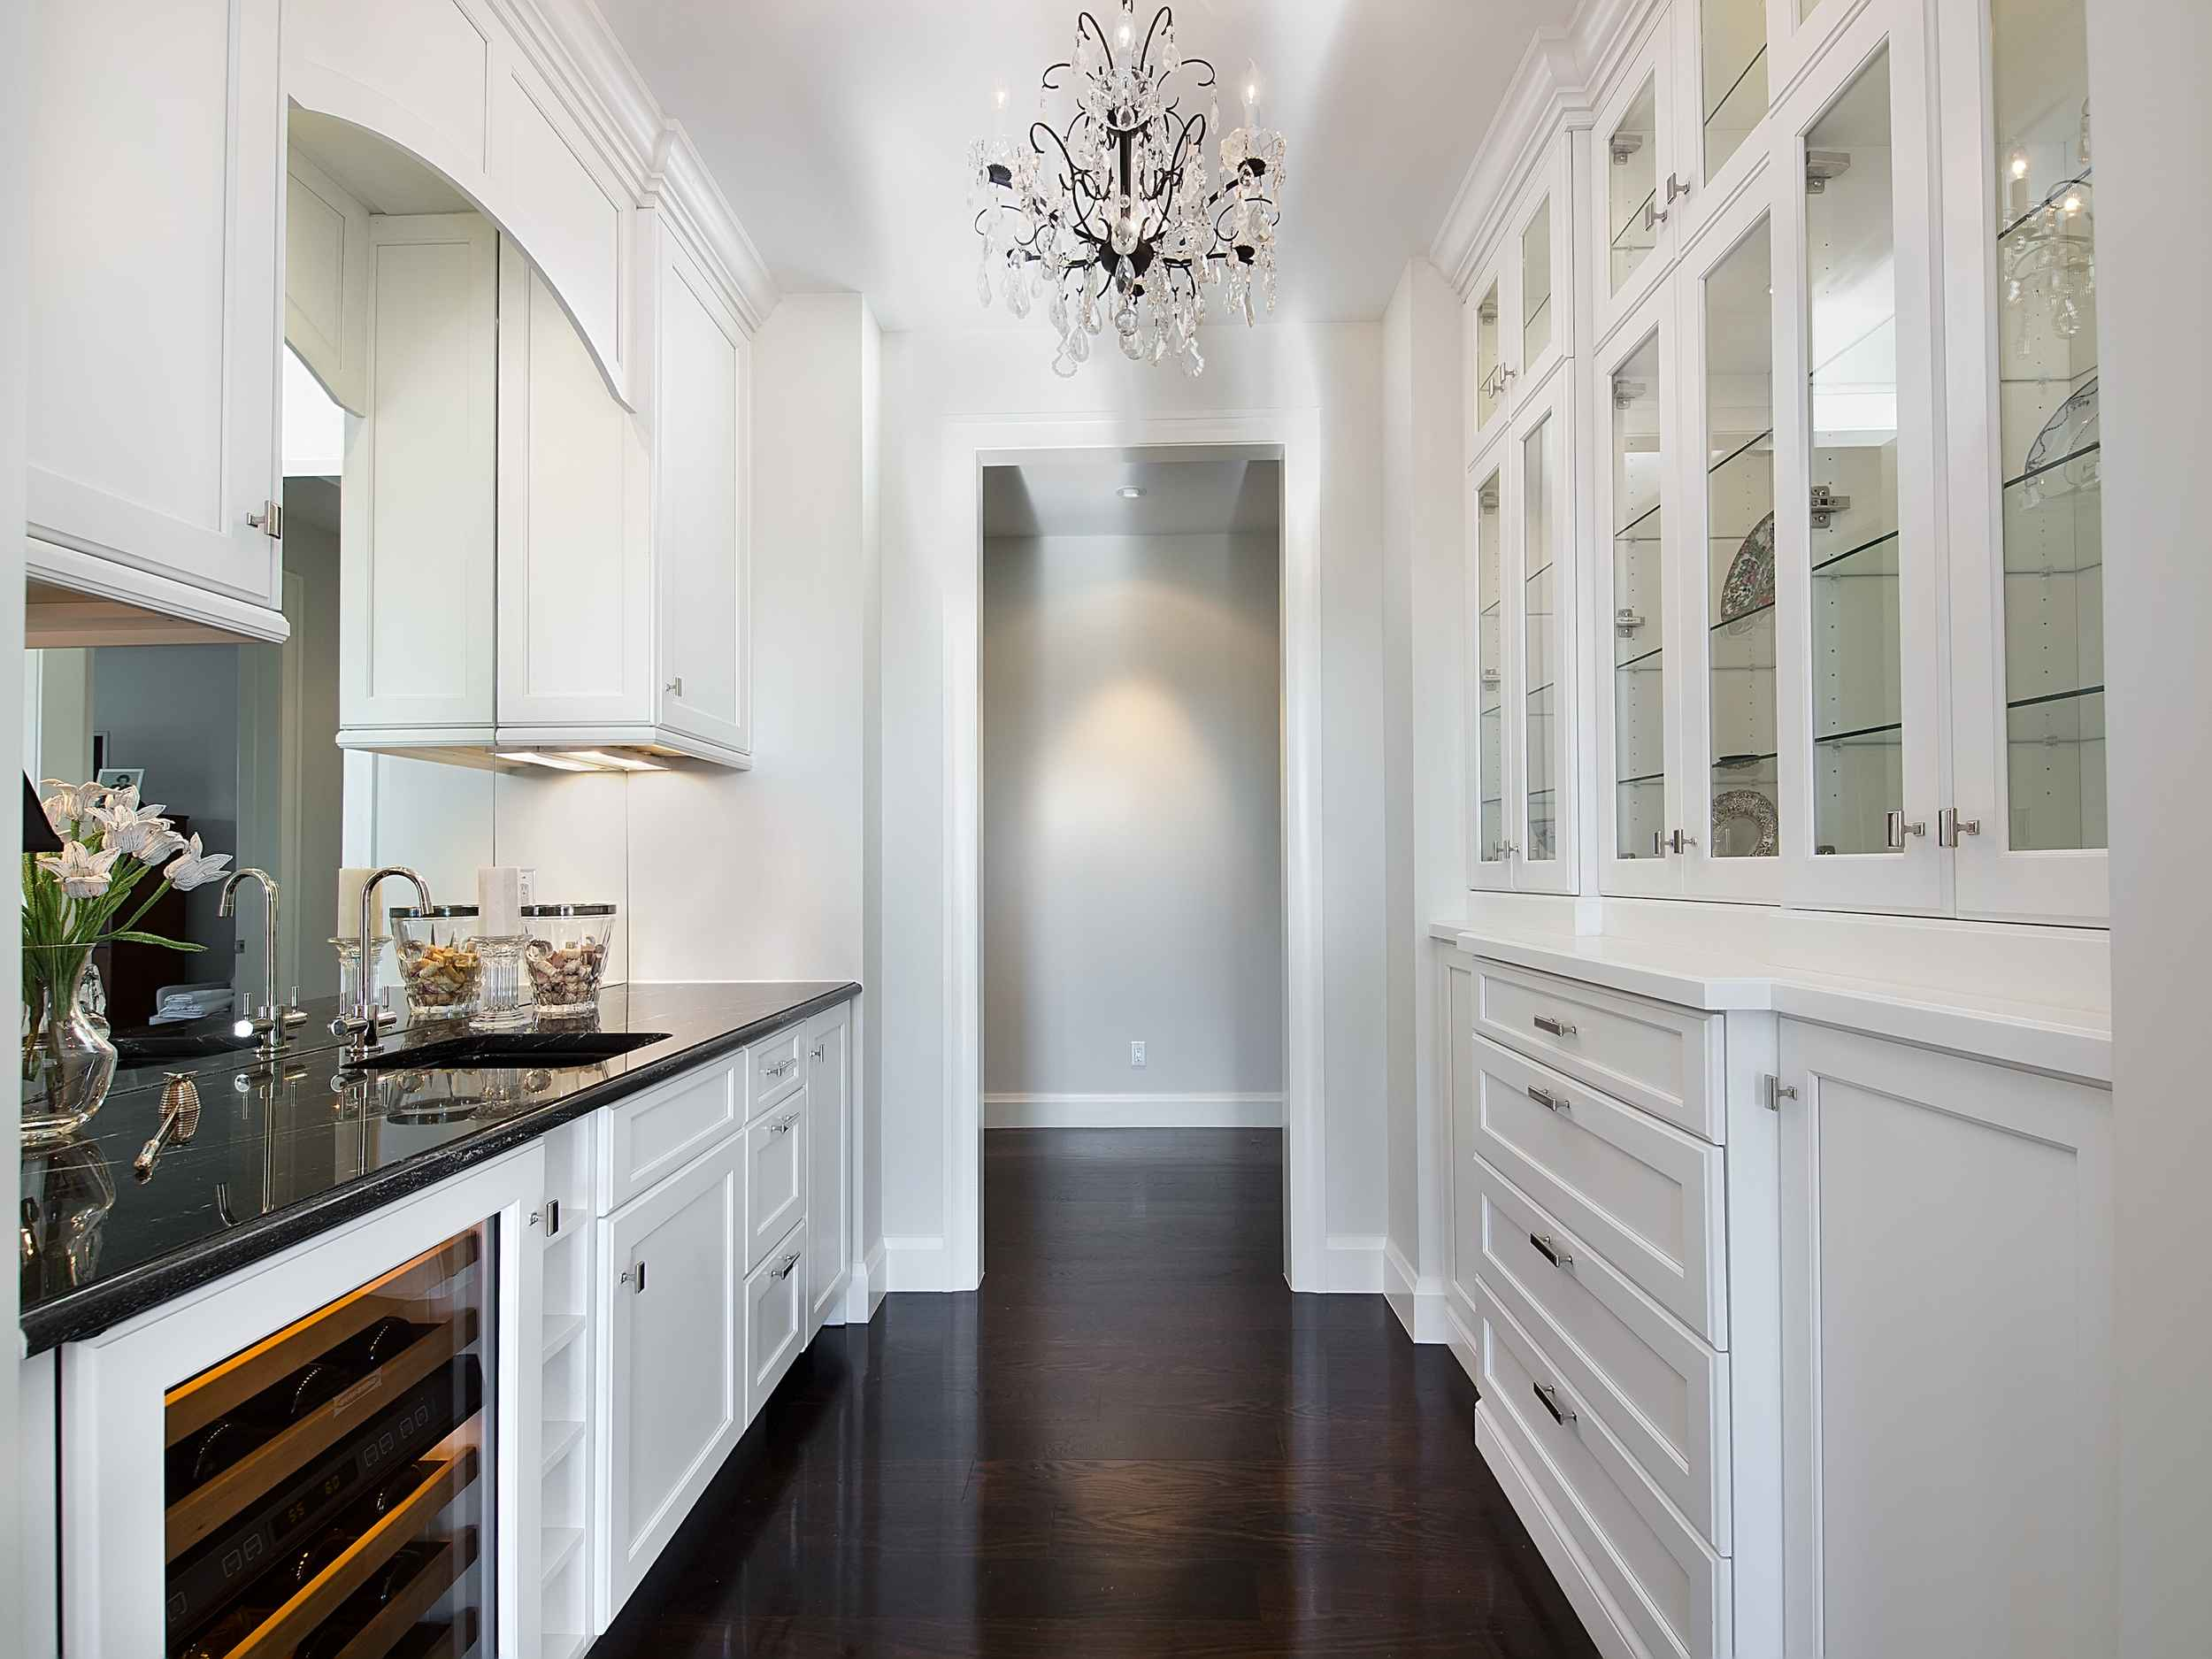 sophisticated in white — sanctuary kitchen and bath design.jpg